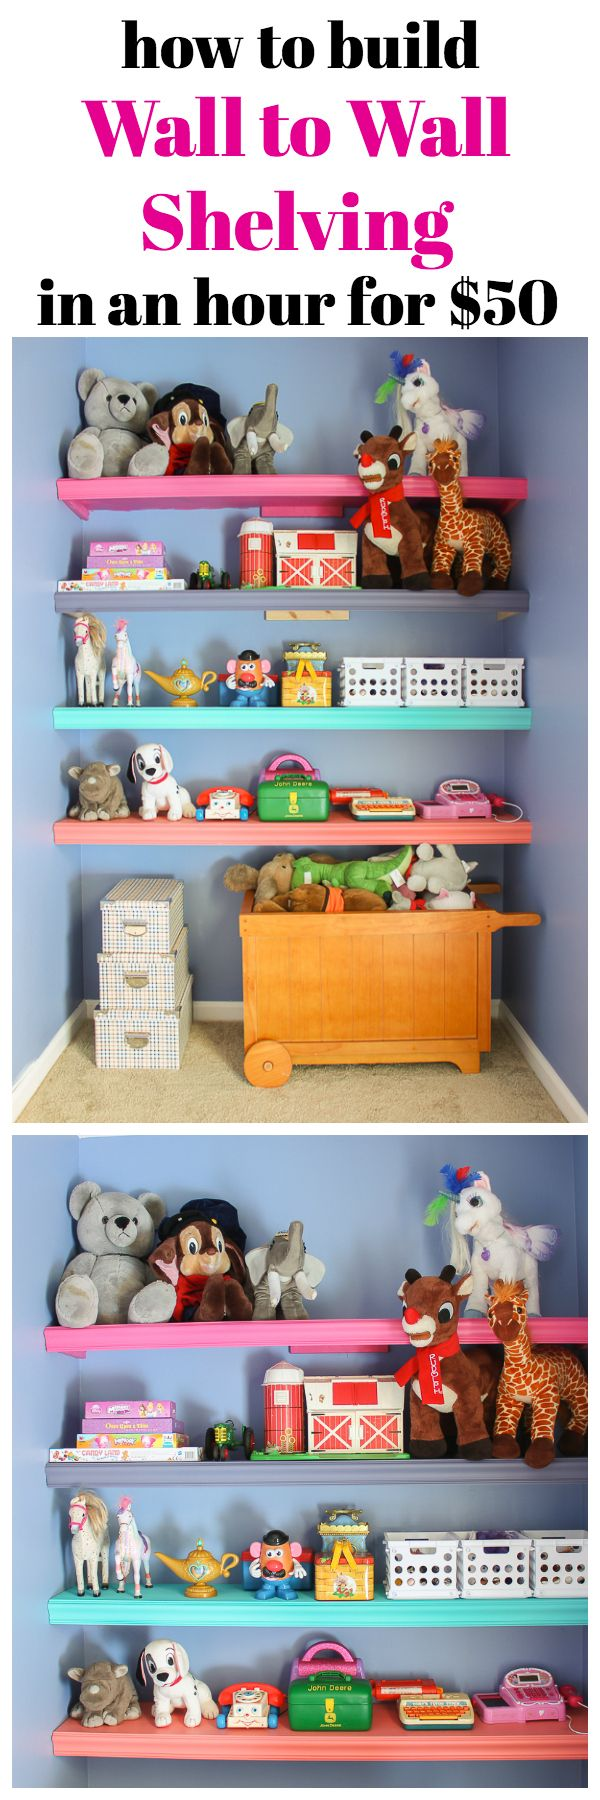 How to Build Wall to Wall Shelves | DIY Shelves | DIY Shelving | How to Build Shelves | How to Build Shelving | Beginner DIY Projects